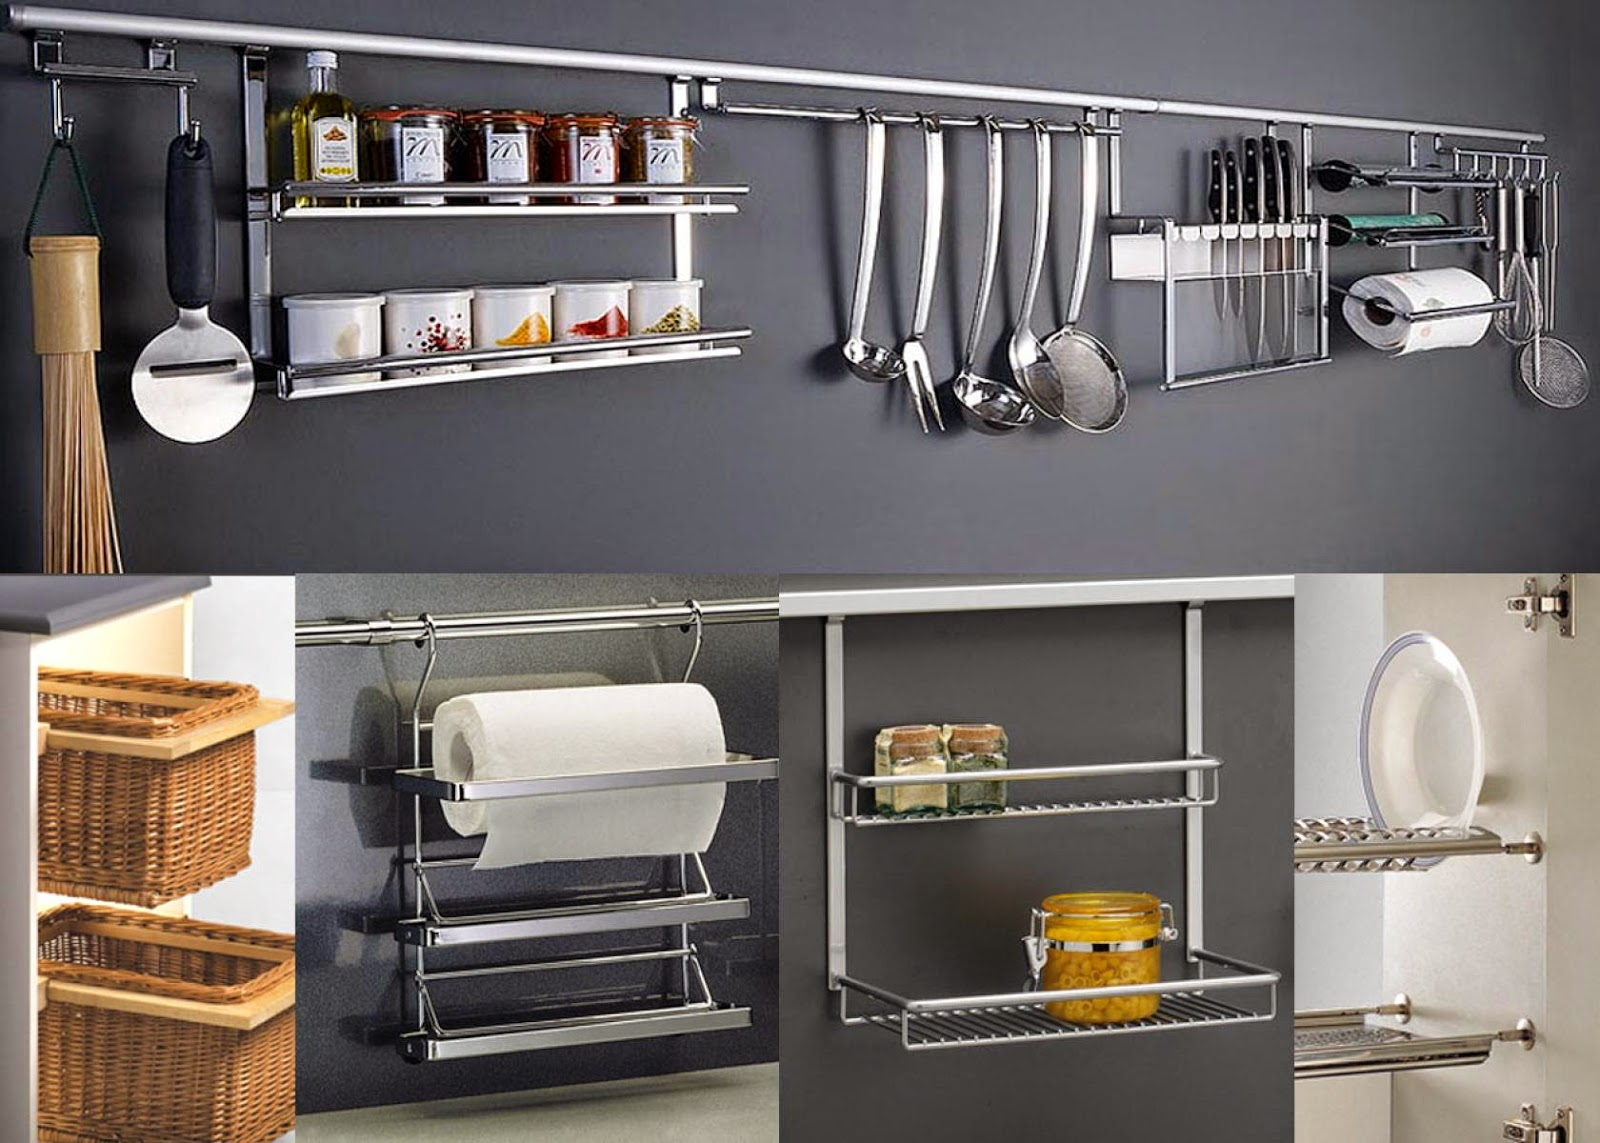 Dwell of decor 30 smart ideas for decorating kitchen walls for Smart kitchen accessories